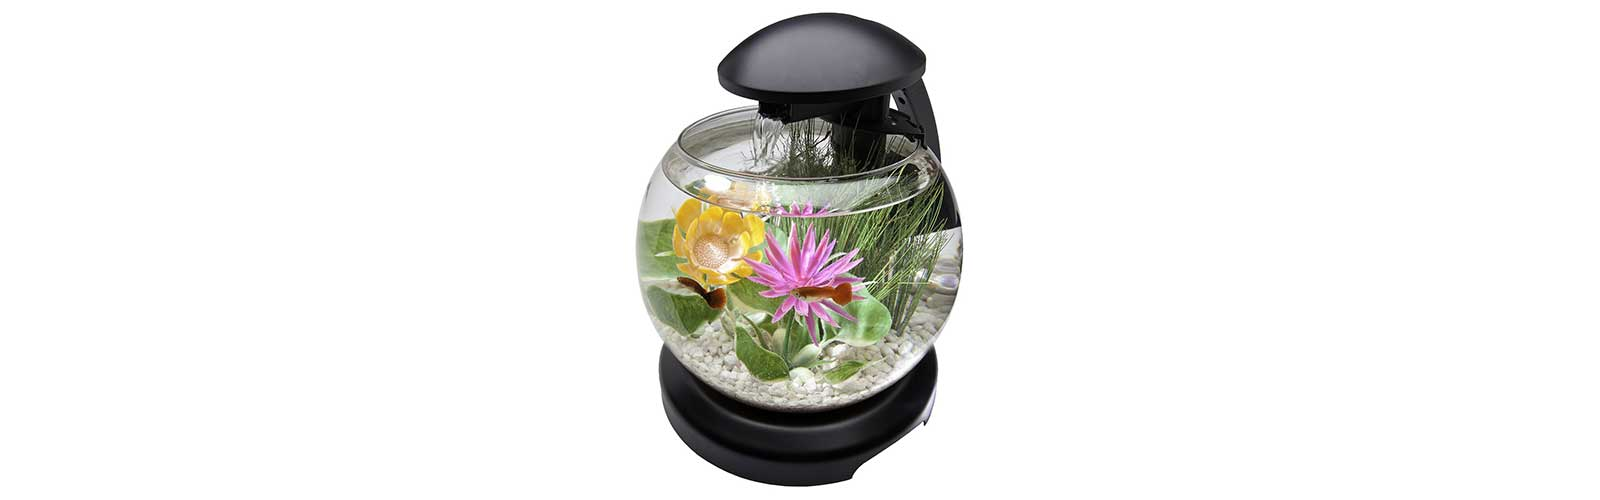 tetra-1-8-gallon-waterfall-globe